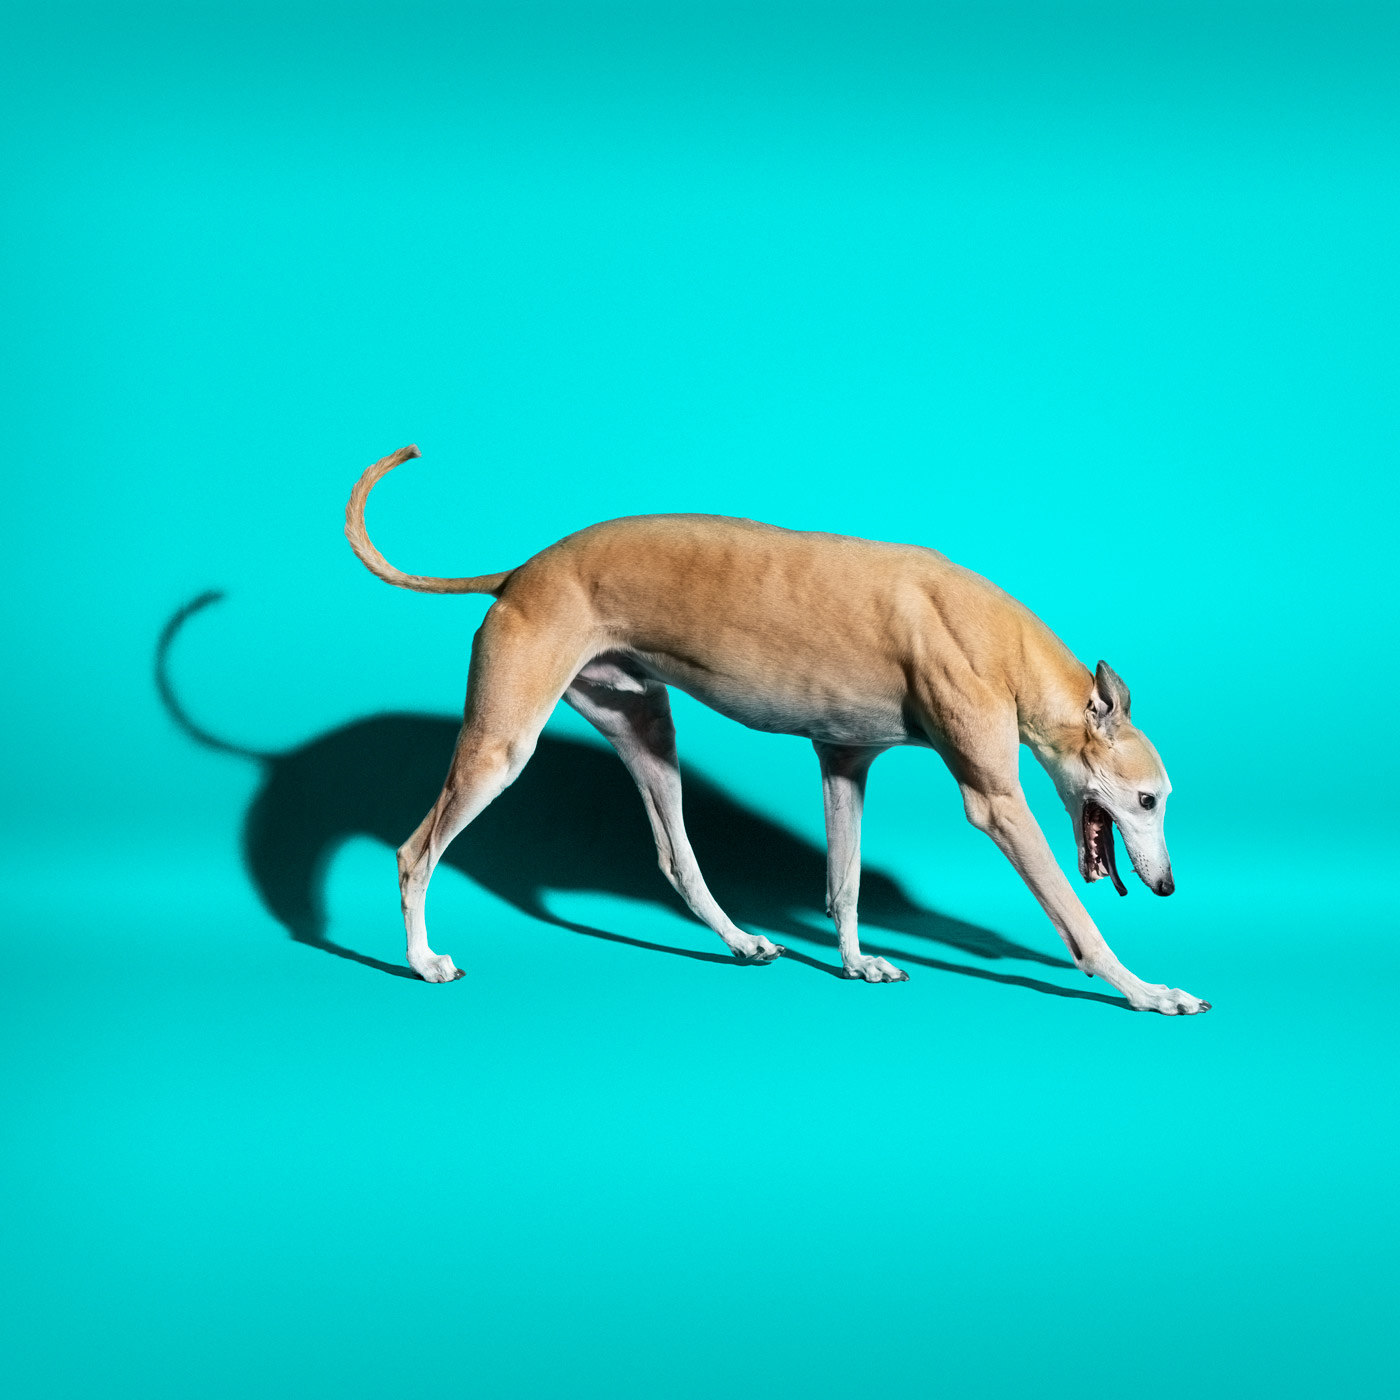 Commercial photography Portland - greyhound dog on aqua background